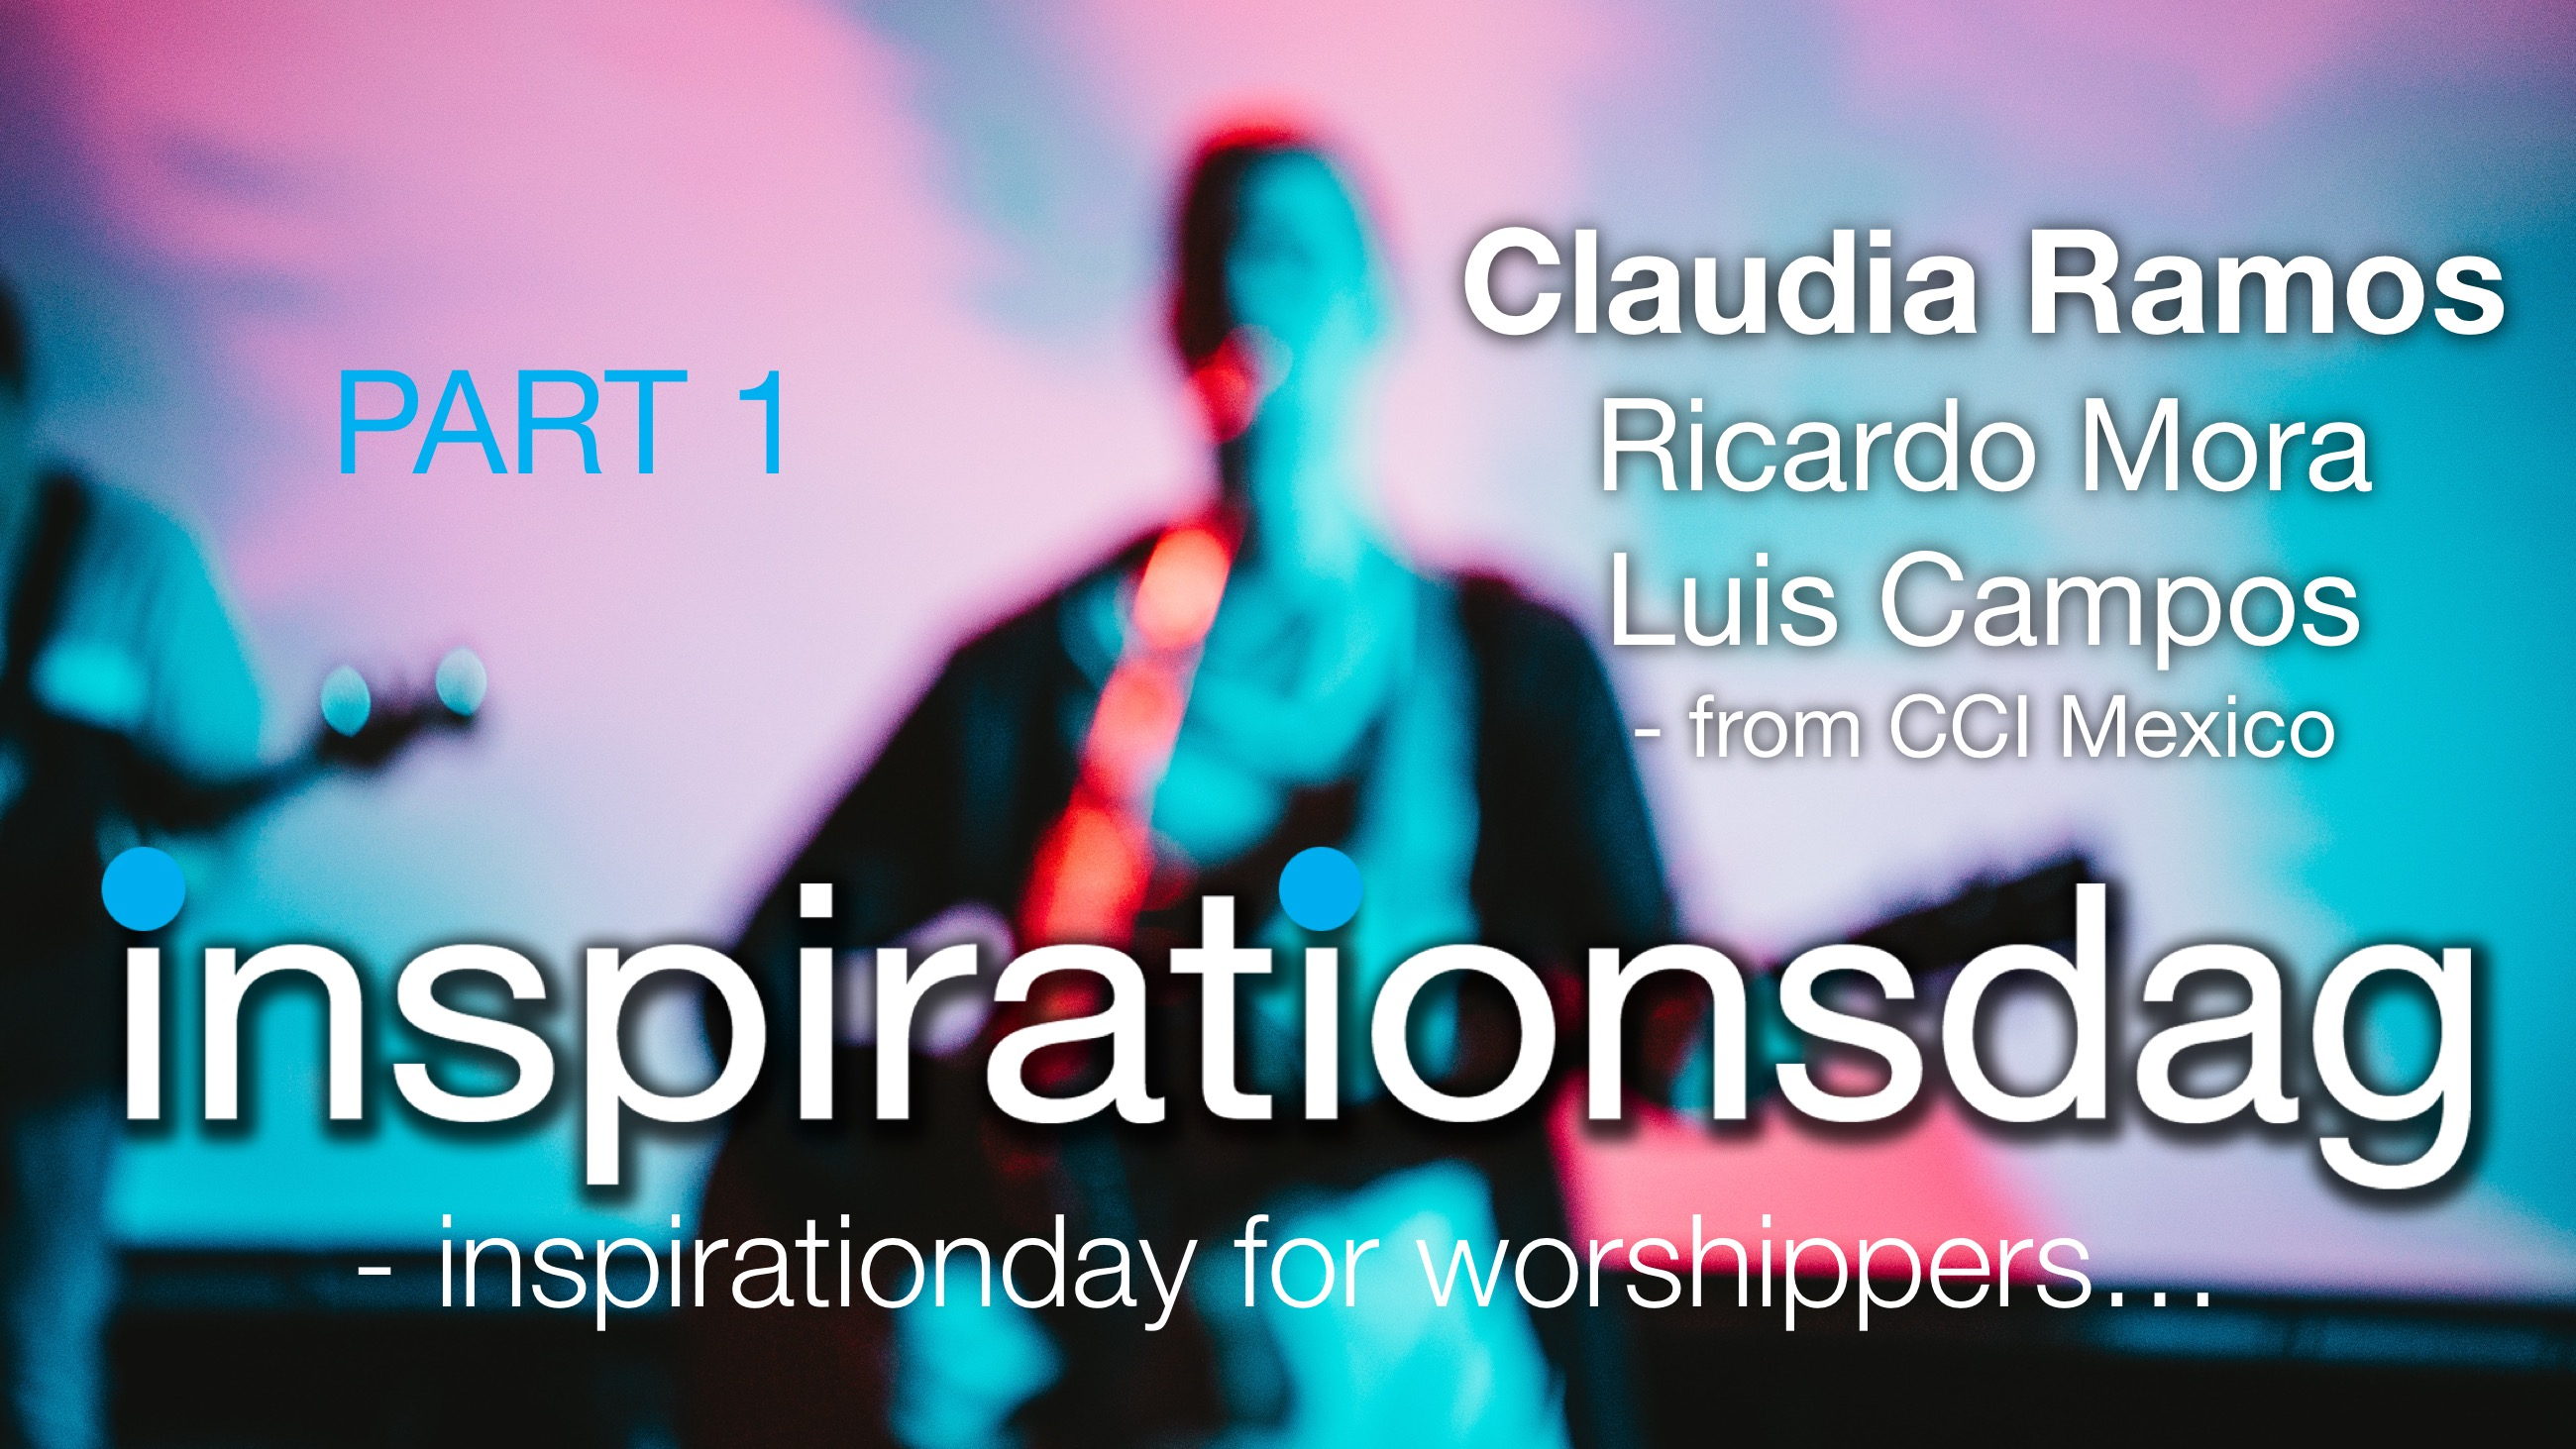 Worship seminar (English) - Claudia Ramos - Part 1